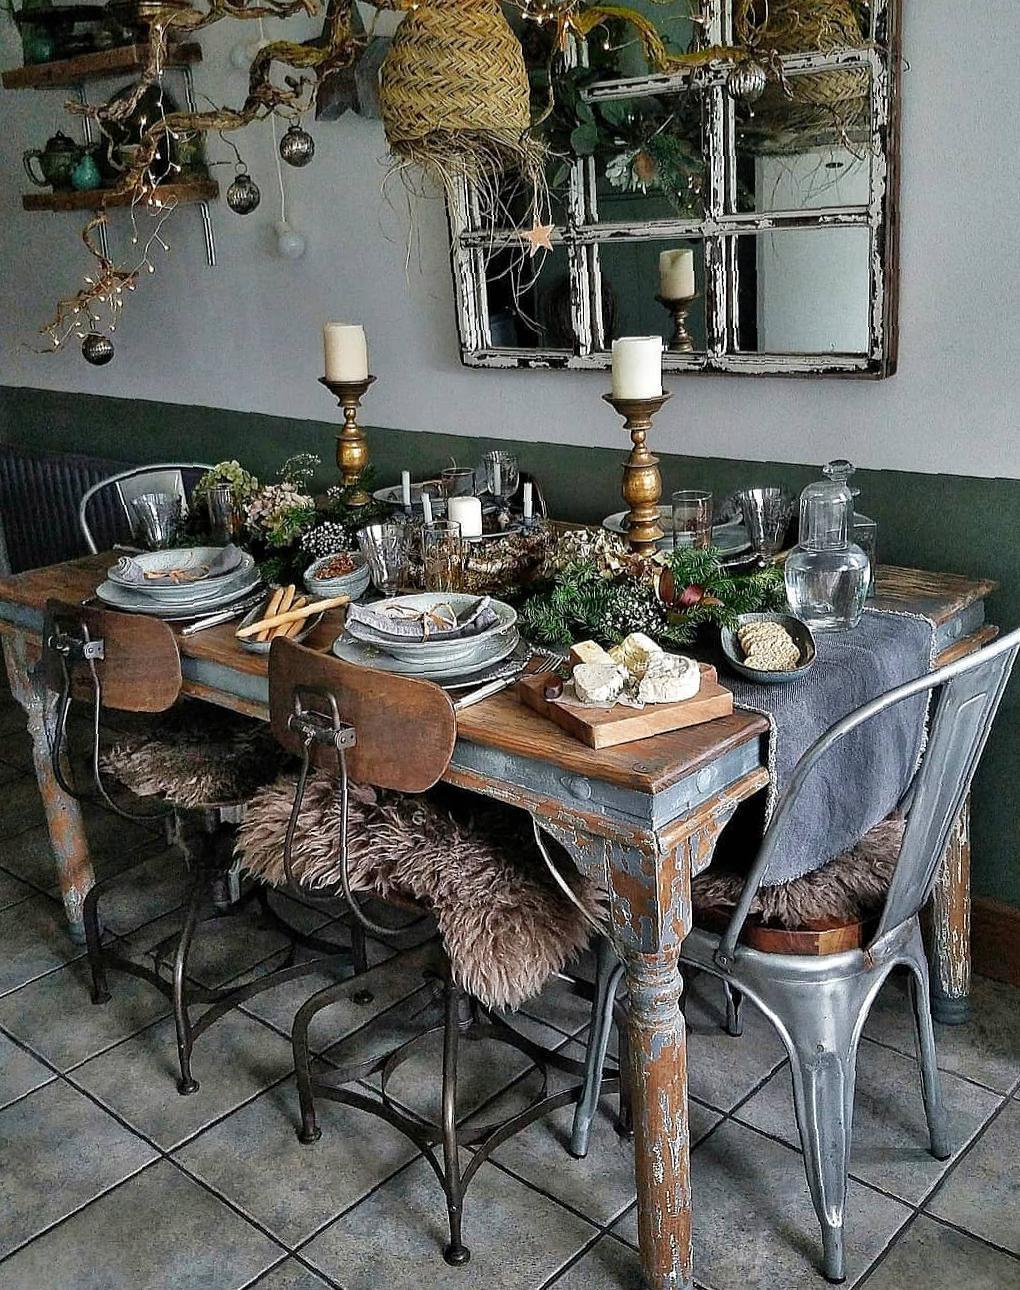 36 Dining Tables for a Wonderful Dining Experience - Page 11 of 12 - Guide19 Blog